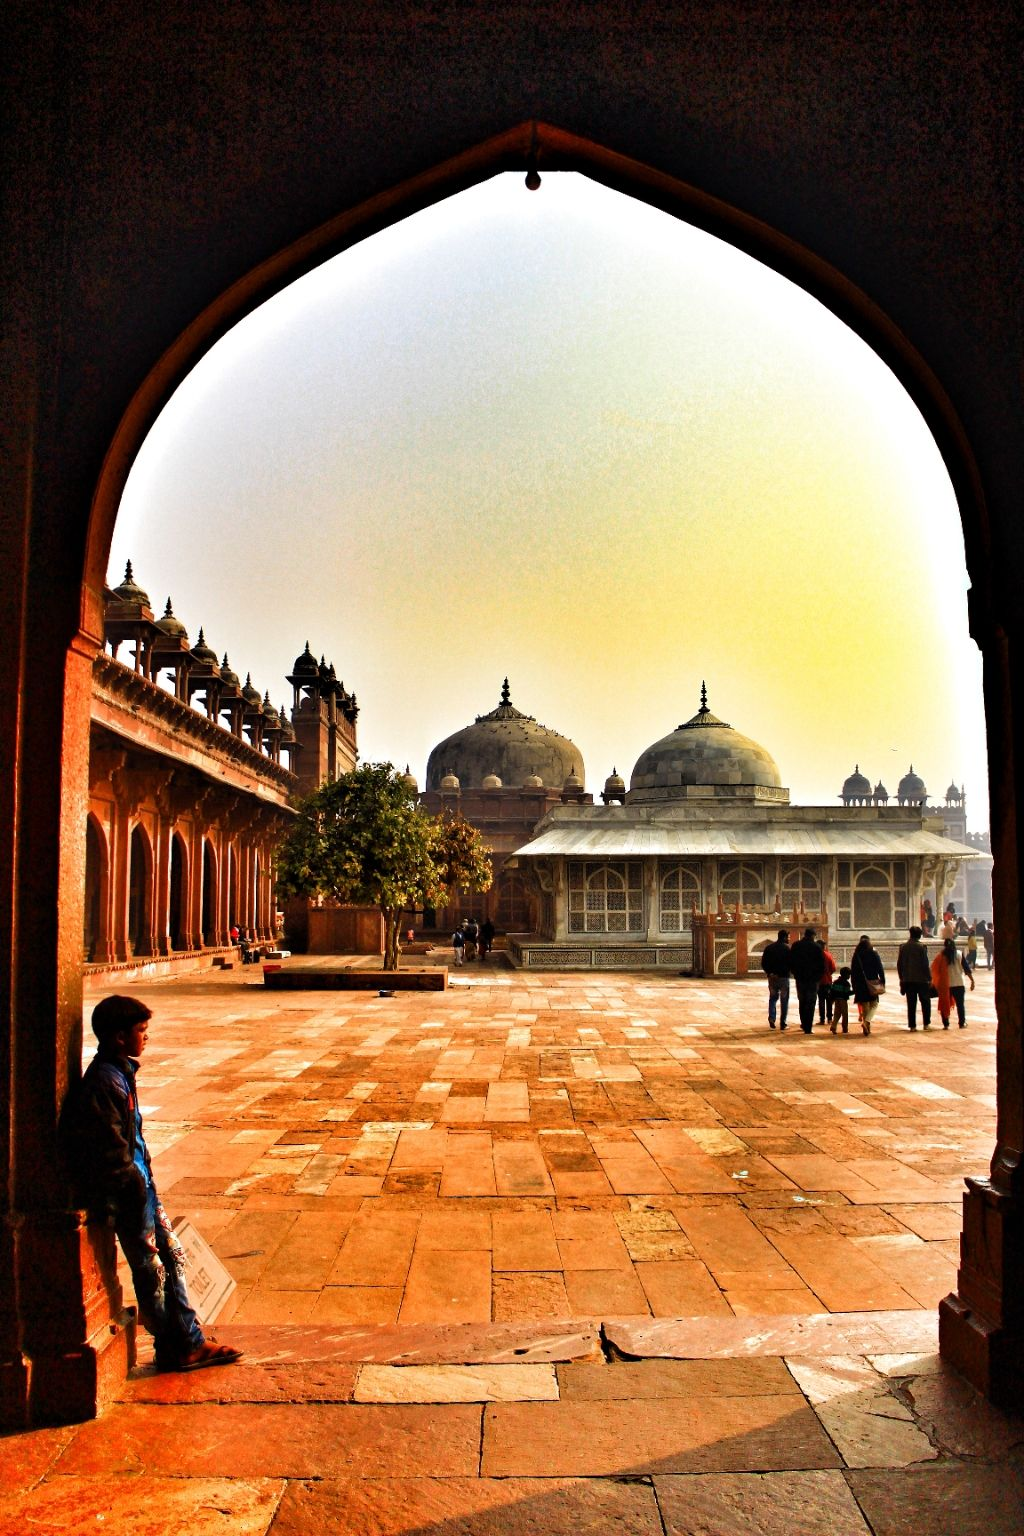 Photo of Fatehpur Sikri By Nikhlesh tyagi